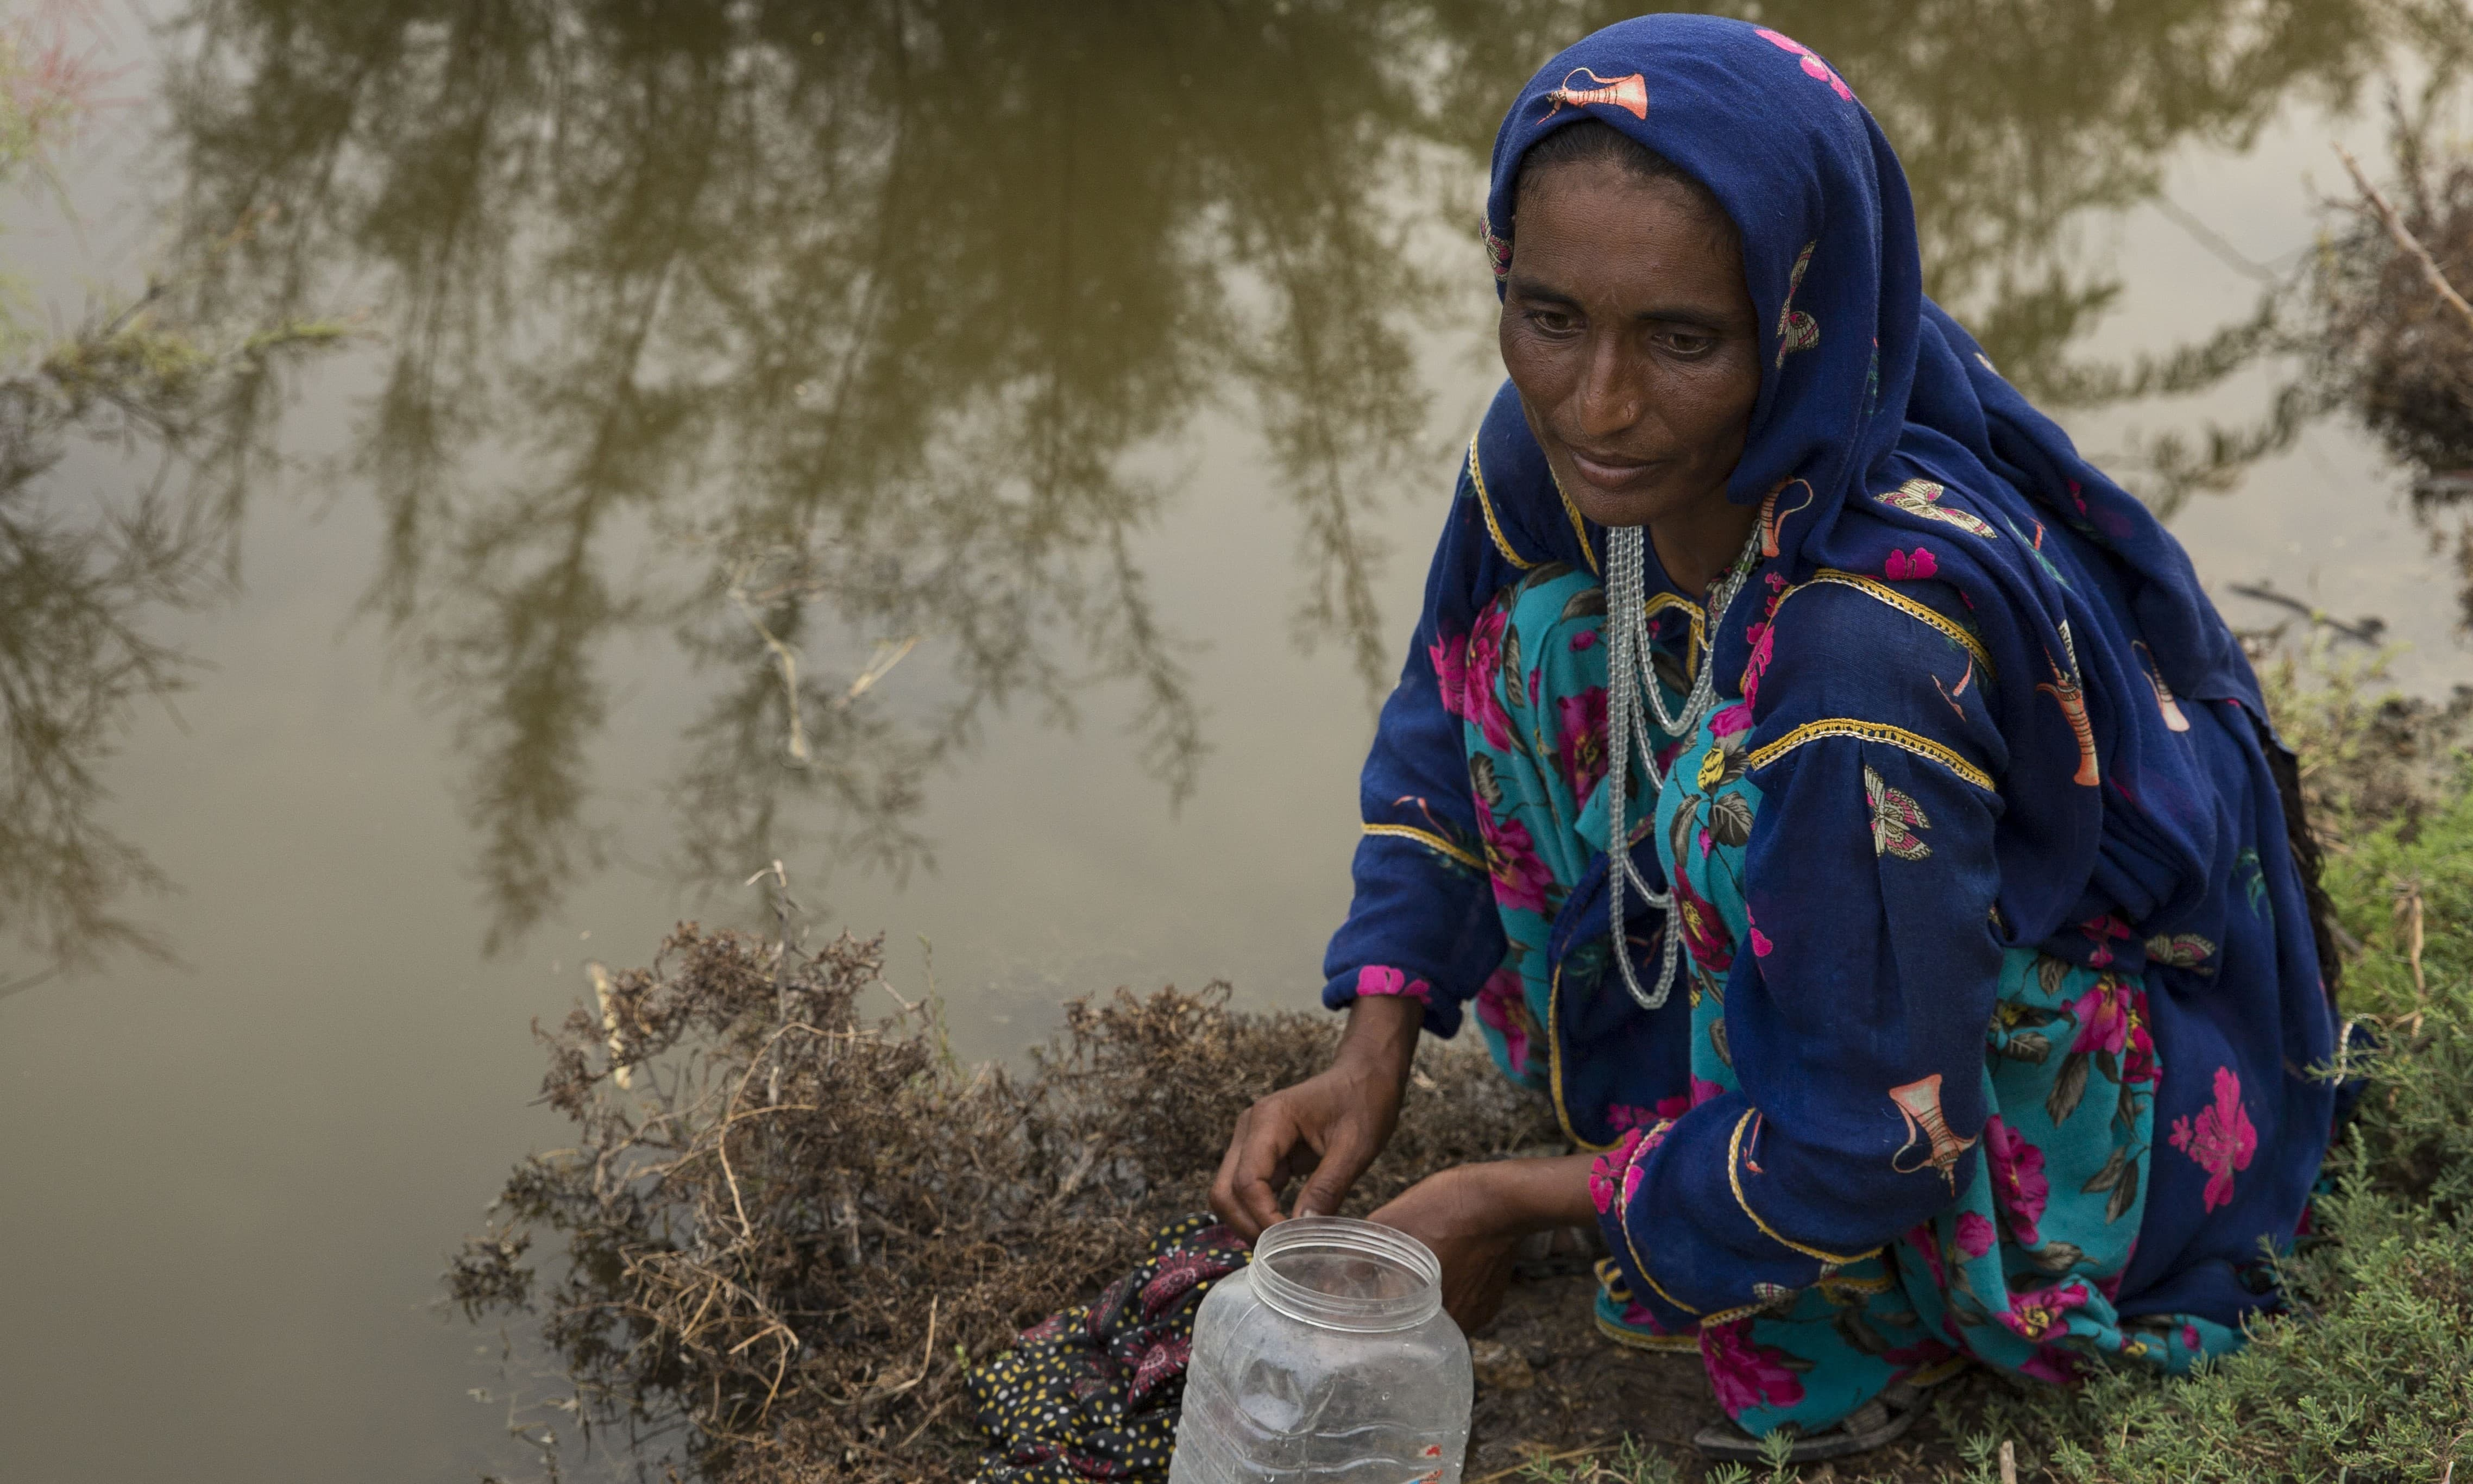 With crops gone and possessions lost, the flood-affected communities of Sindh need our immediate attention